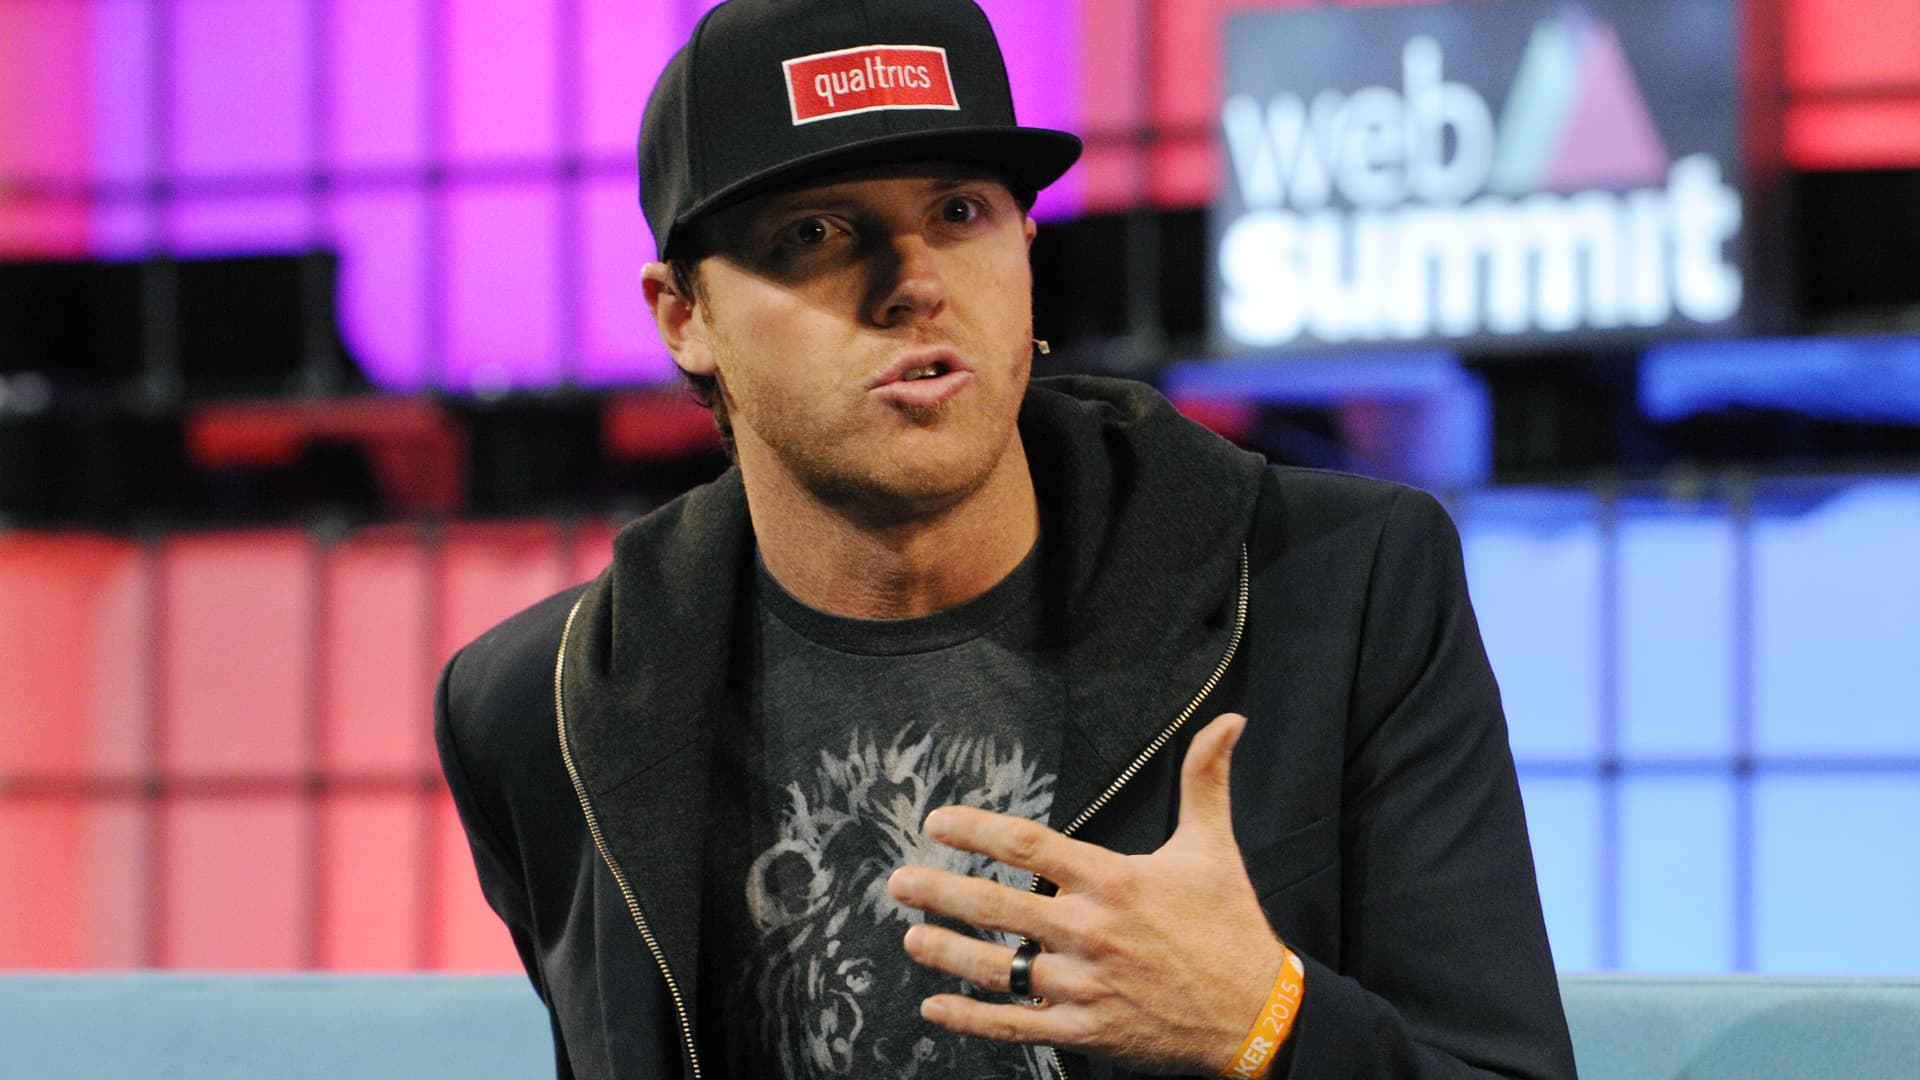 Ryan Smith, Chairman of Qualtrics peaks on stage during the 2015 Web Summit on in Dublin, Ireland.